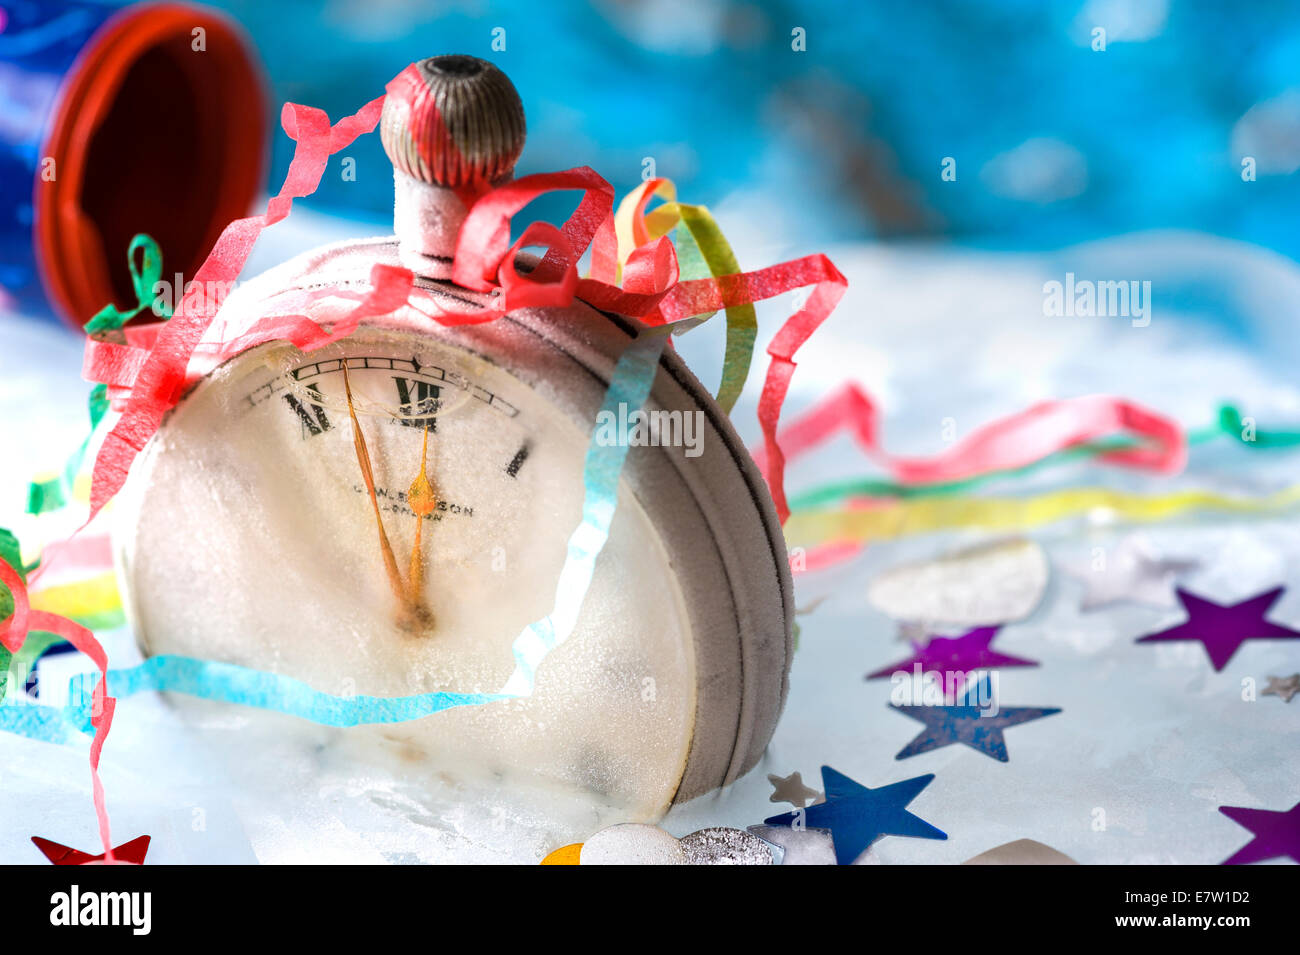 Watch frozen in ice.New year celebrations. - Stock Image